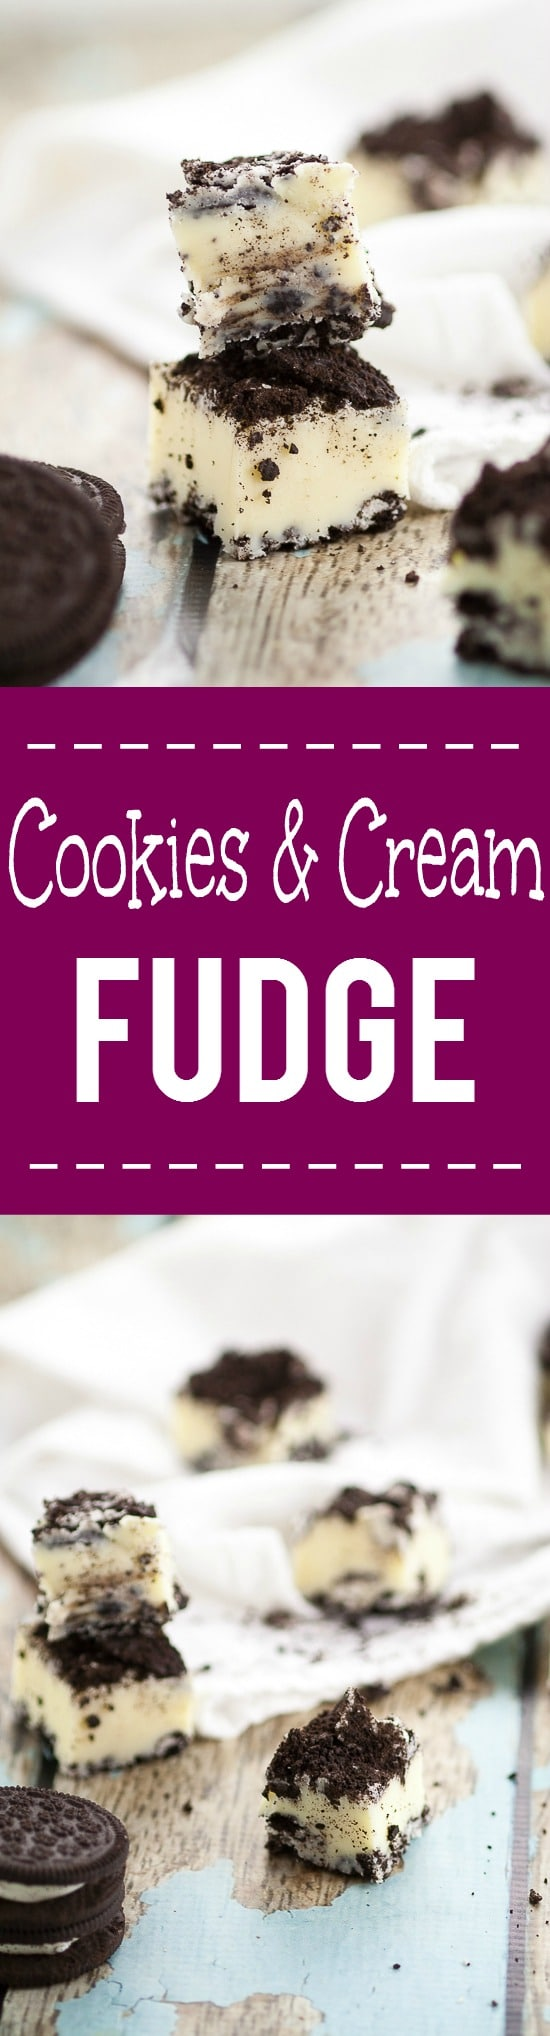 Cookies and Cream Fudge Recipe -Quick and easy Cookies and Cream Fudge recipe with just 5 ingredients for a simple but delicious sweet treat. Classic and sweet white chocolate fudge with crunchy chocolate cookies for a scrumptious crowd-pleasing favorite.